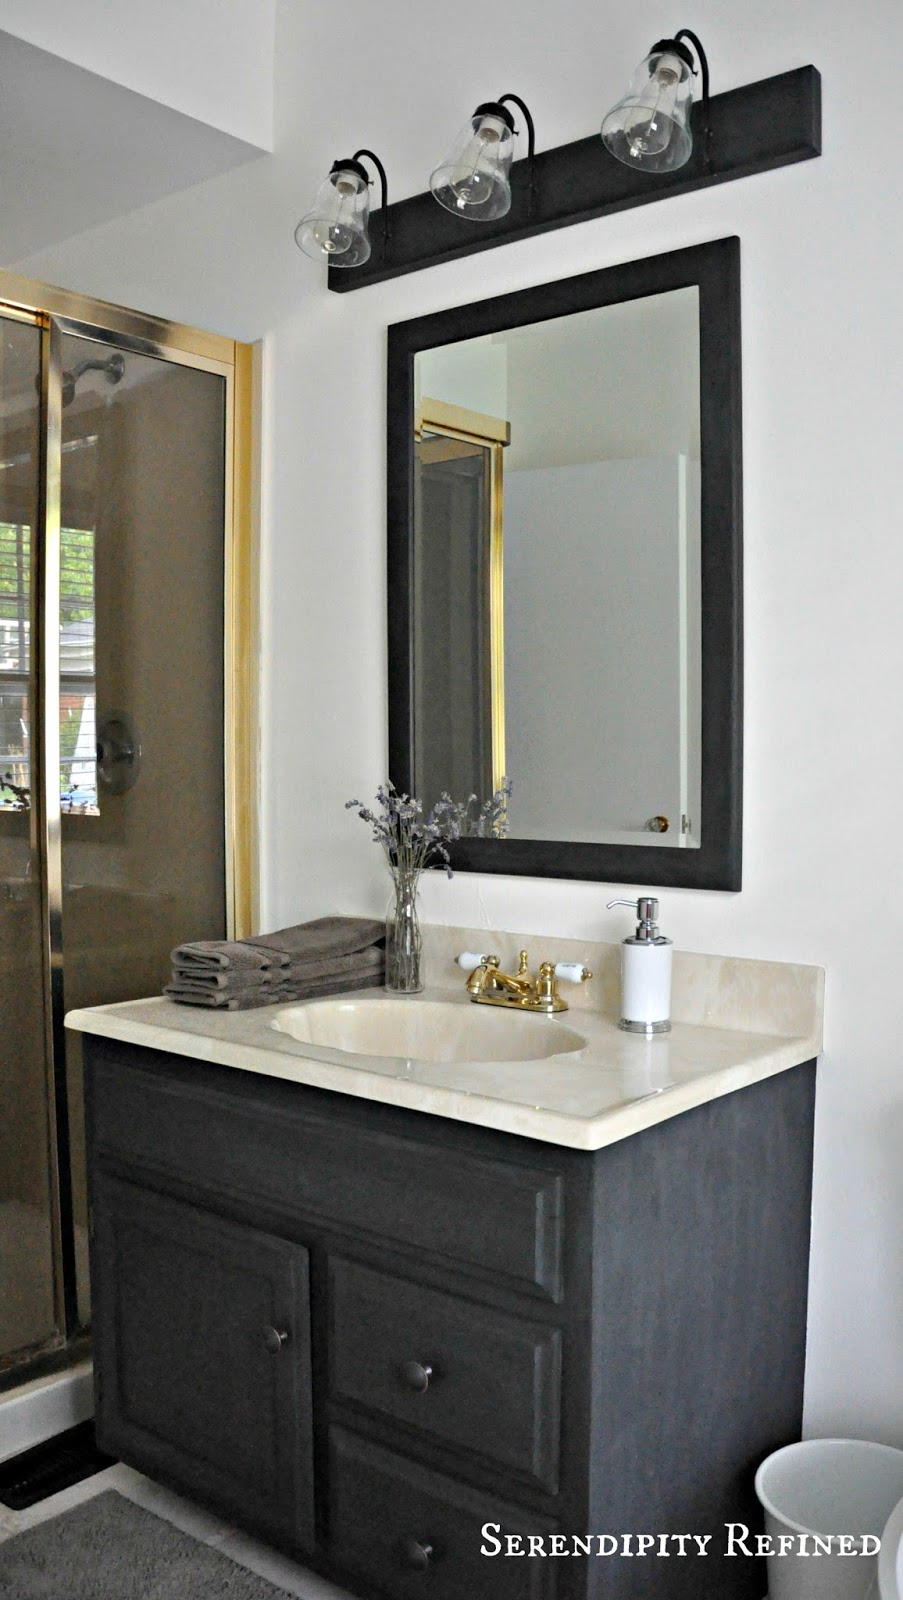 Serendipity refined blog how to update oak and brass bathroom serendipity refined blog how to update oak and brass bathroom fixtures with spray paint and chalk paint arubaitofo Choice Image